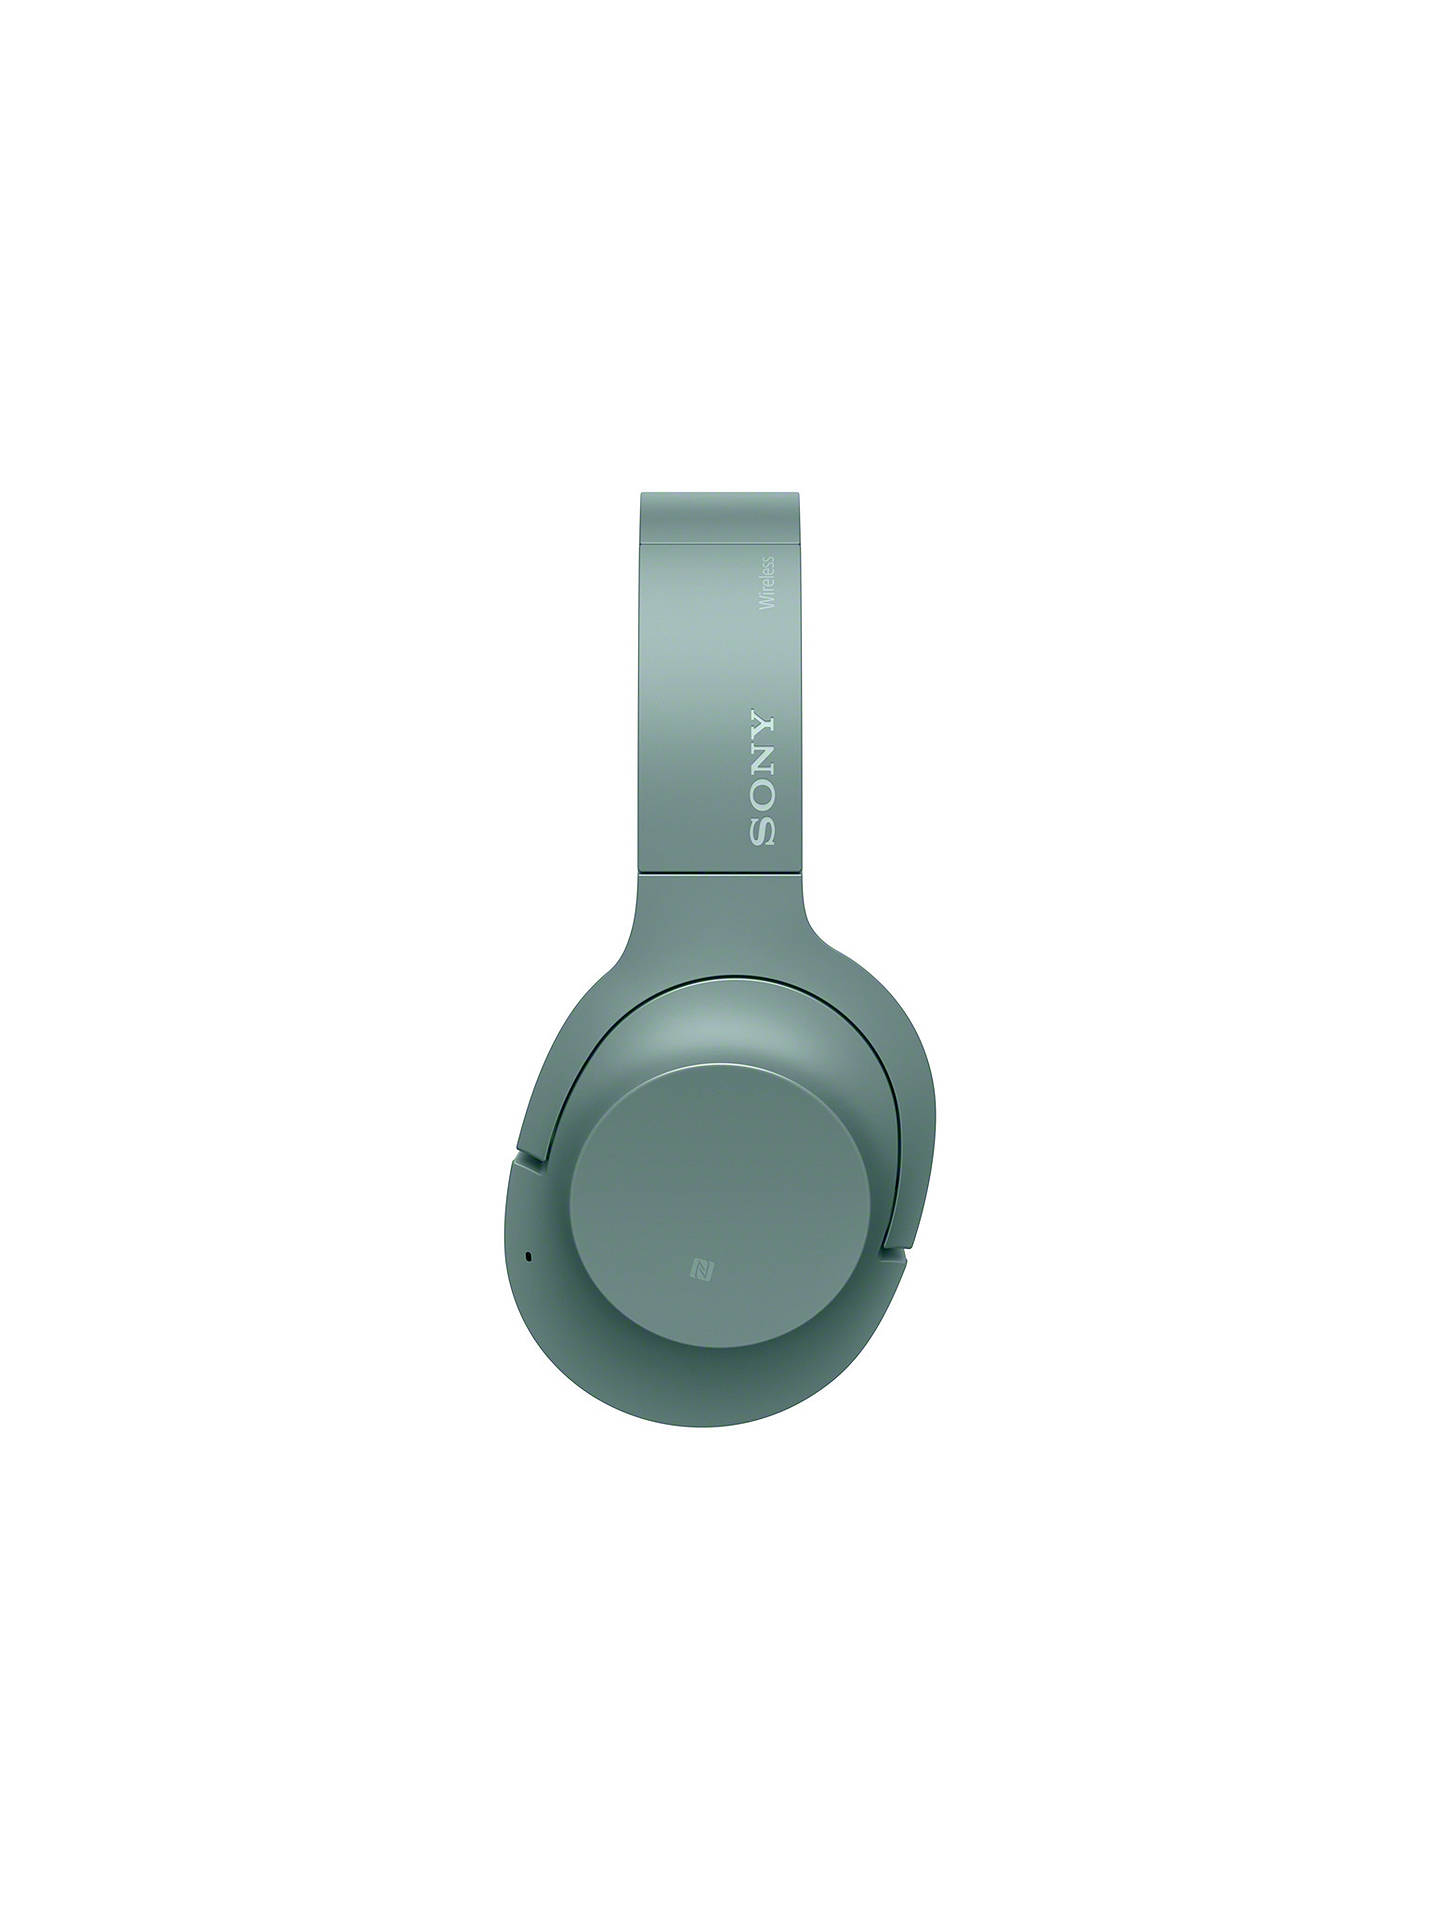 Buy Sony WH-H900N h.ear on 2 Wireless Bluetooth NFC Over-Ear Headphones with Noise Cancellation, Green Online at johnlewis.com